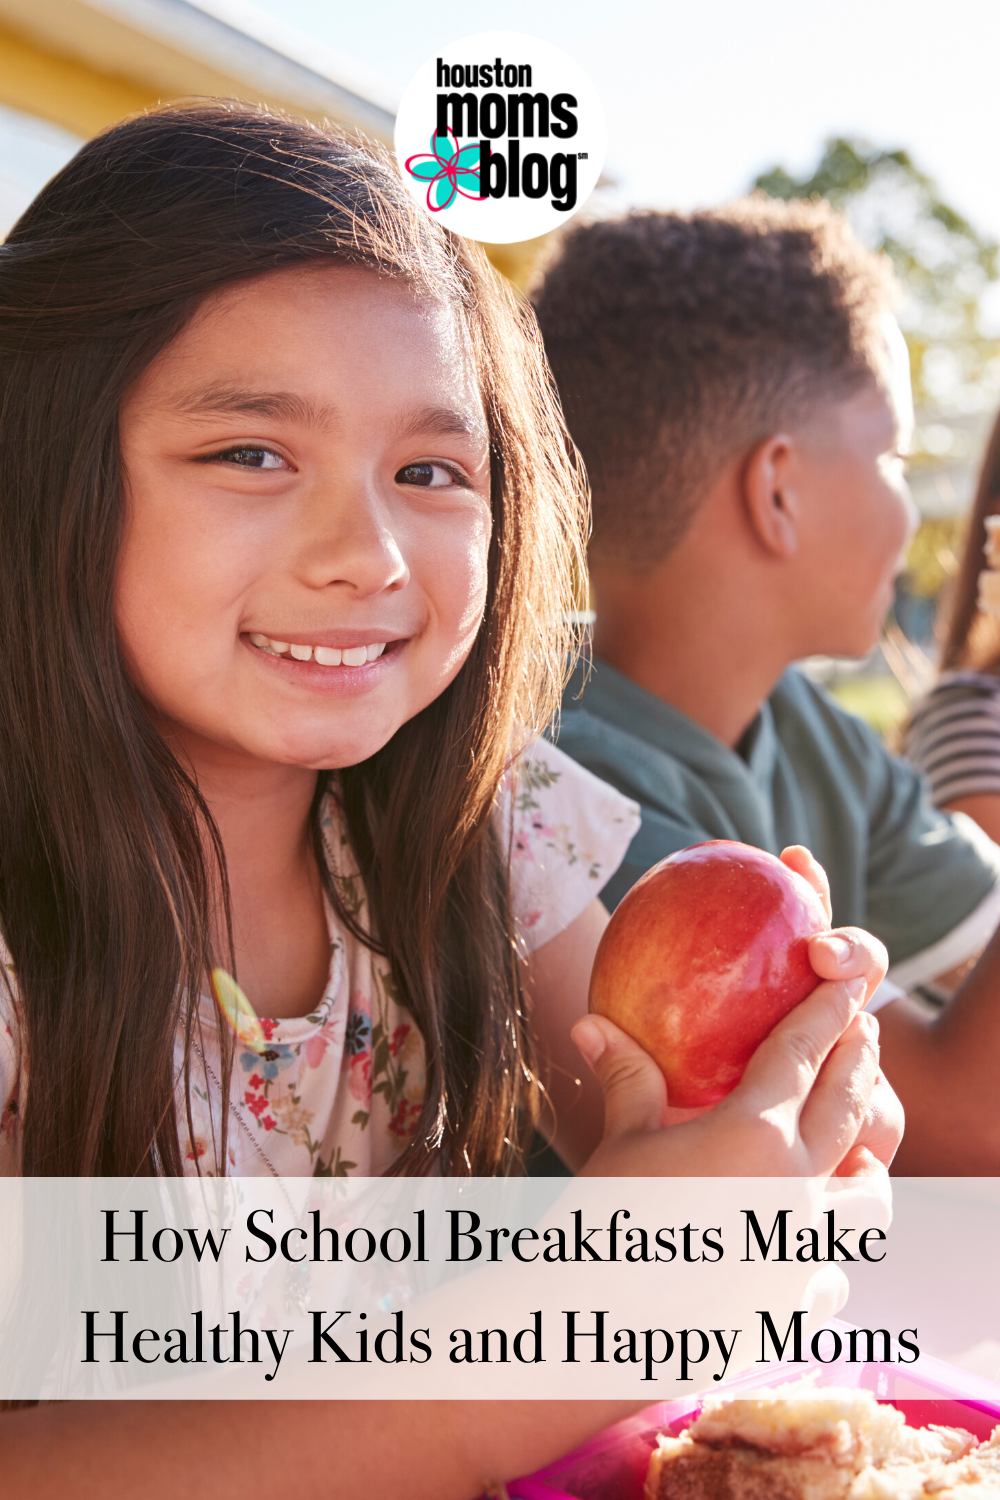 "Houston Moms Blog ""How School Breakfasts Make Healthy Kids and Happy Moms"" #houstonmomsblog #momsaroundhouston"